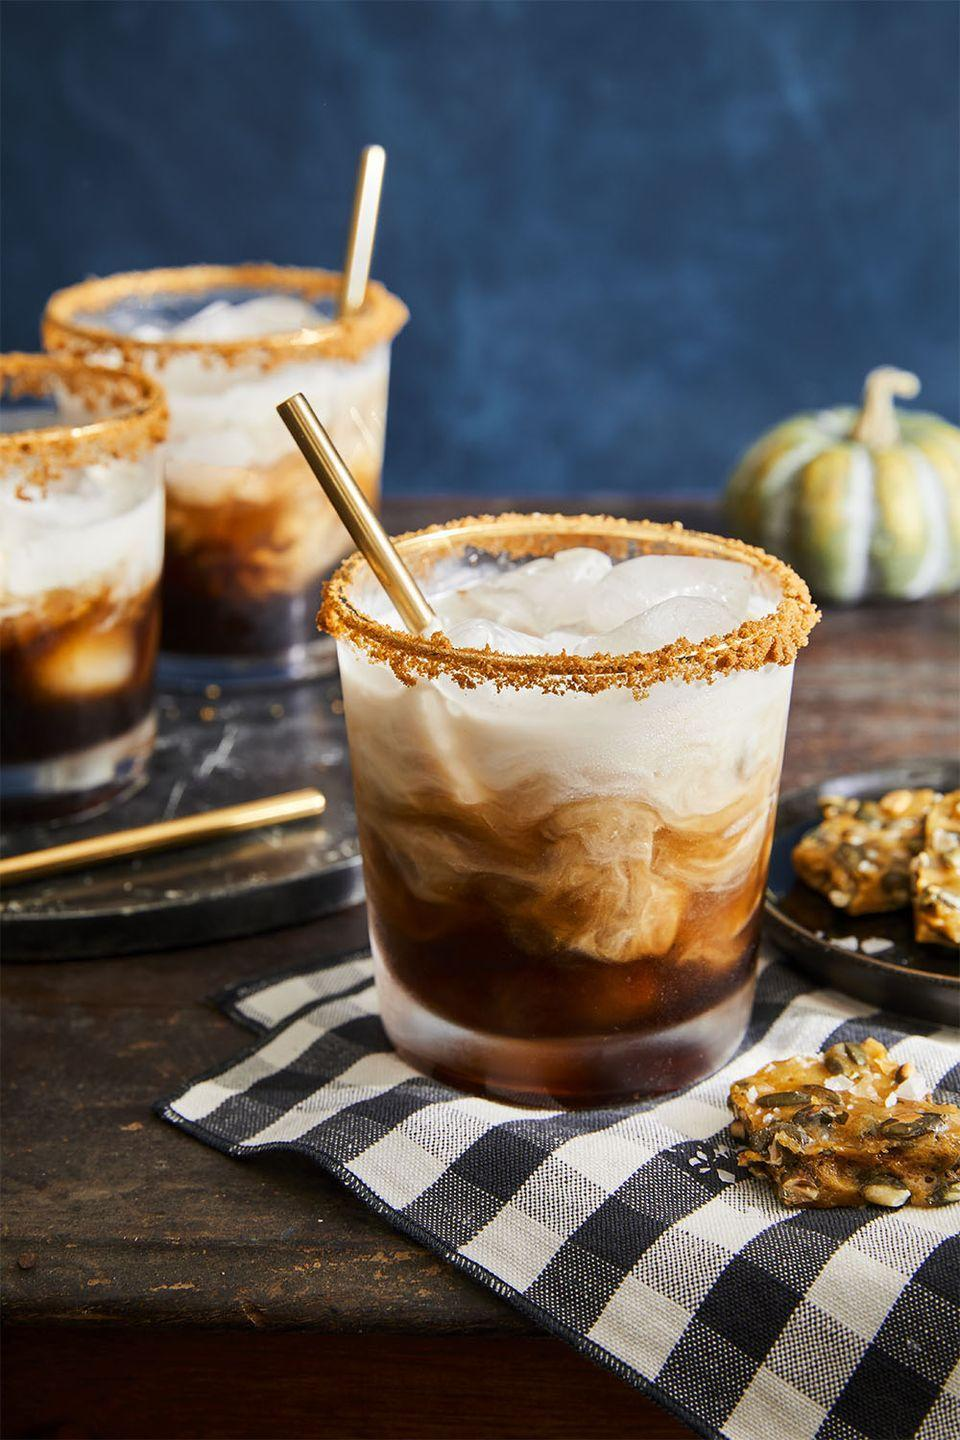 """<p>Get your PSL fix at cocktail hour.</p><p><em>Get the recipe from <a href=""""https://www.countryliving.com/food-drinks/a33944101/pumpkin-spice-white-russian/"""" rel=""""nofollow noopener"""" target=""""_blank"""" data-ylk=""""slk:Country Living."""" class=""""link rapid-noclick-resp"""">Country Living.</a></em></p>"""